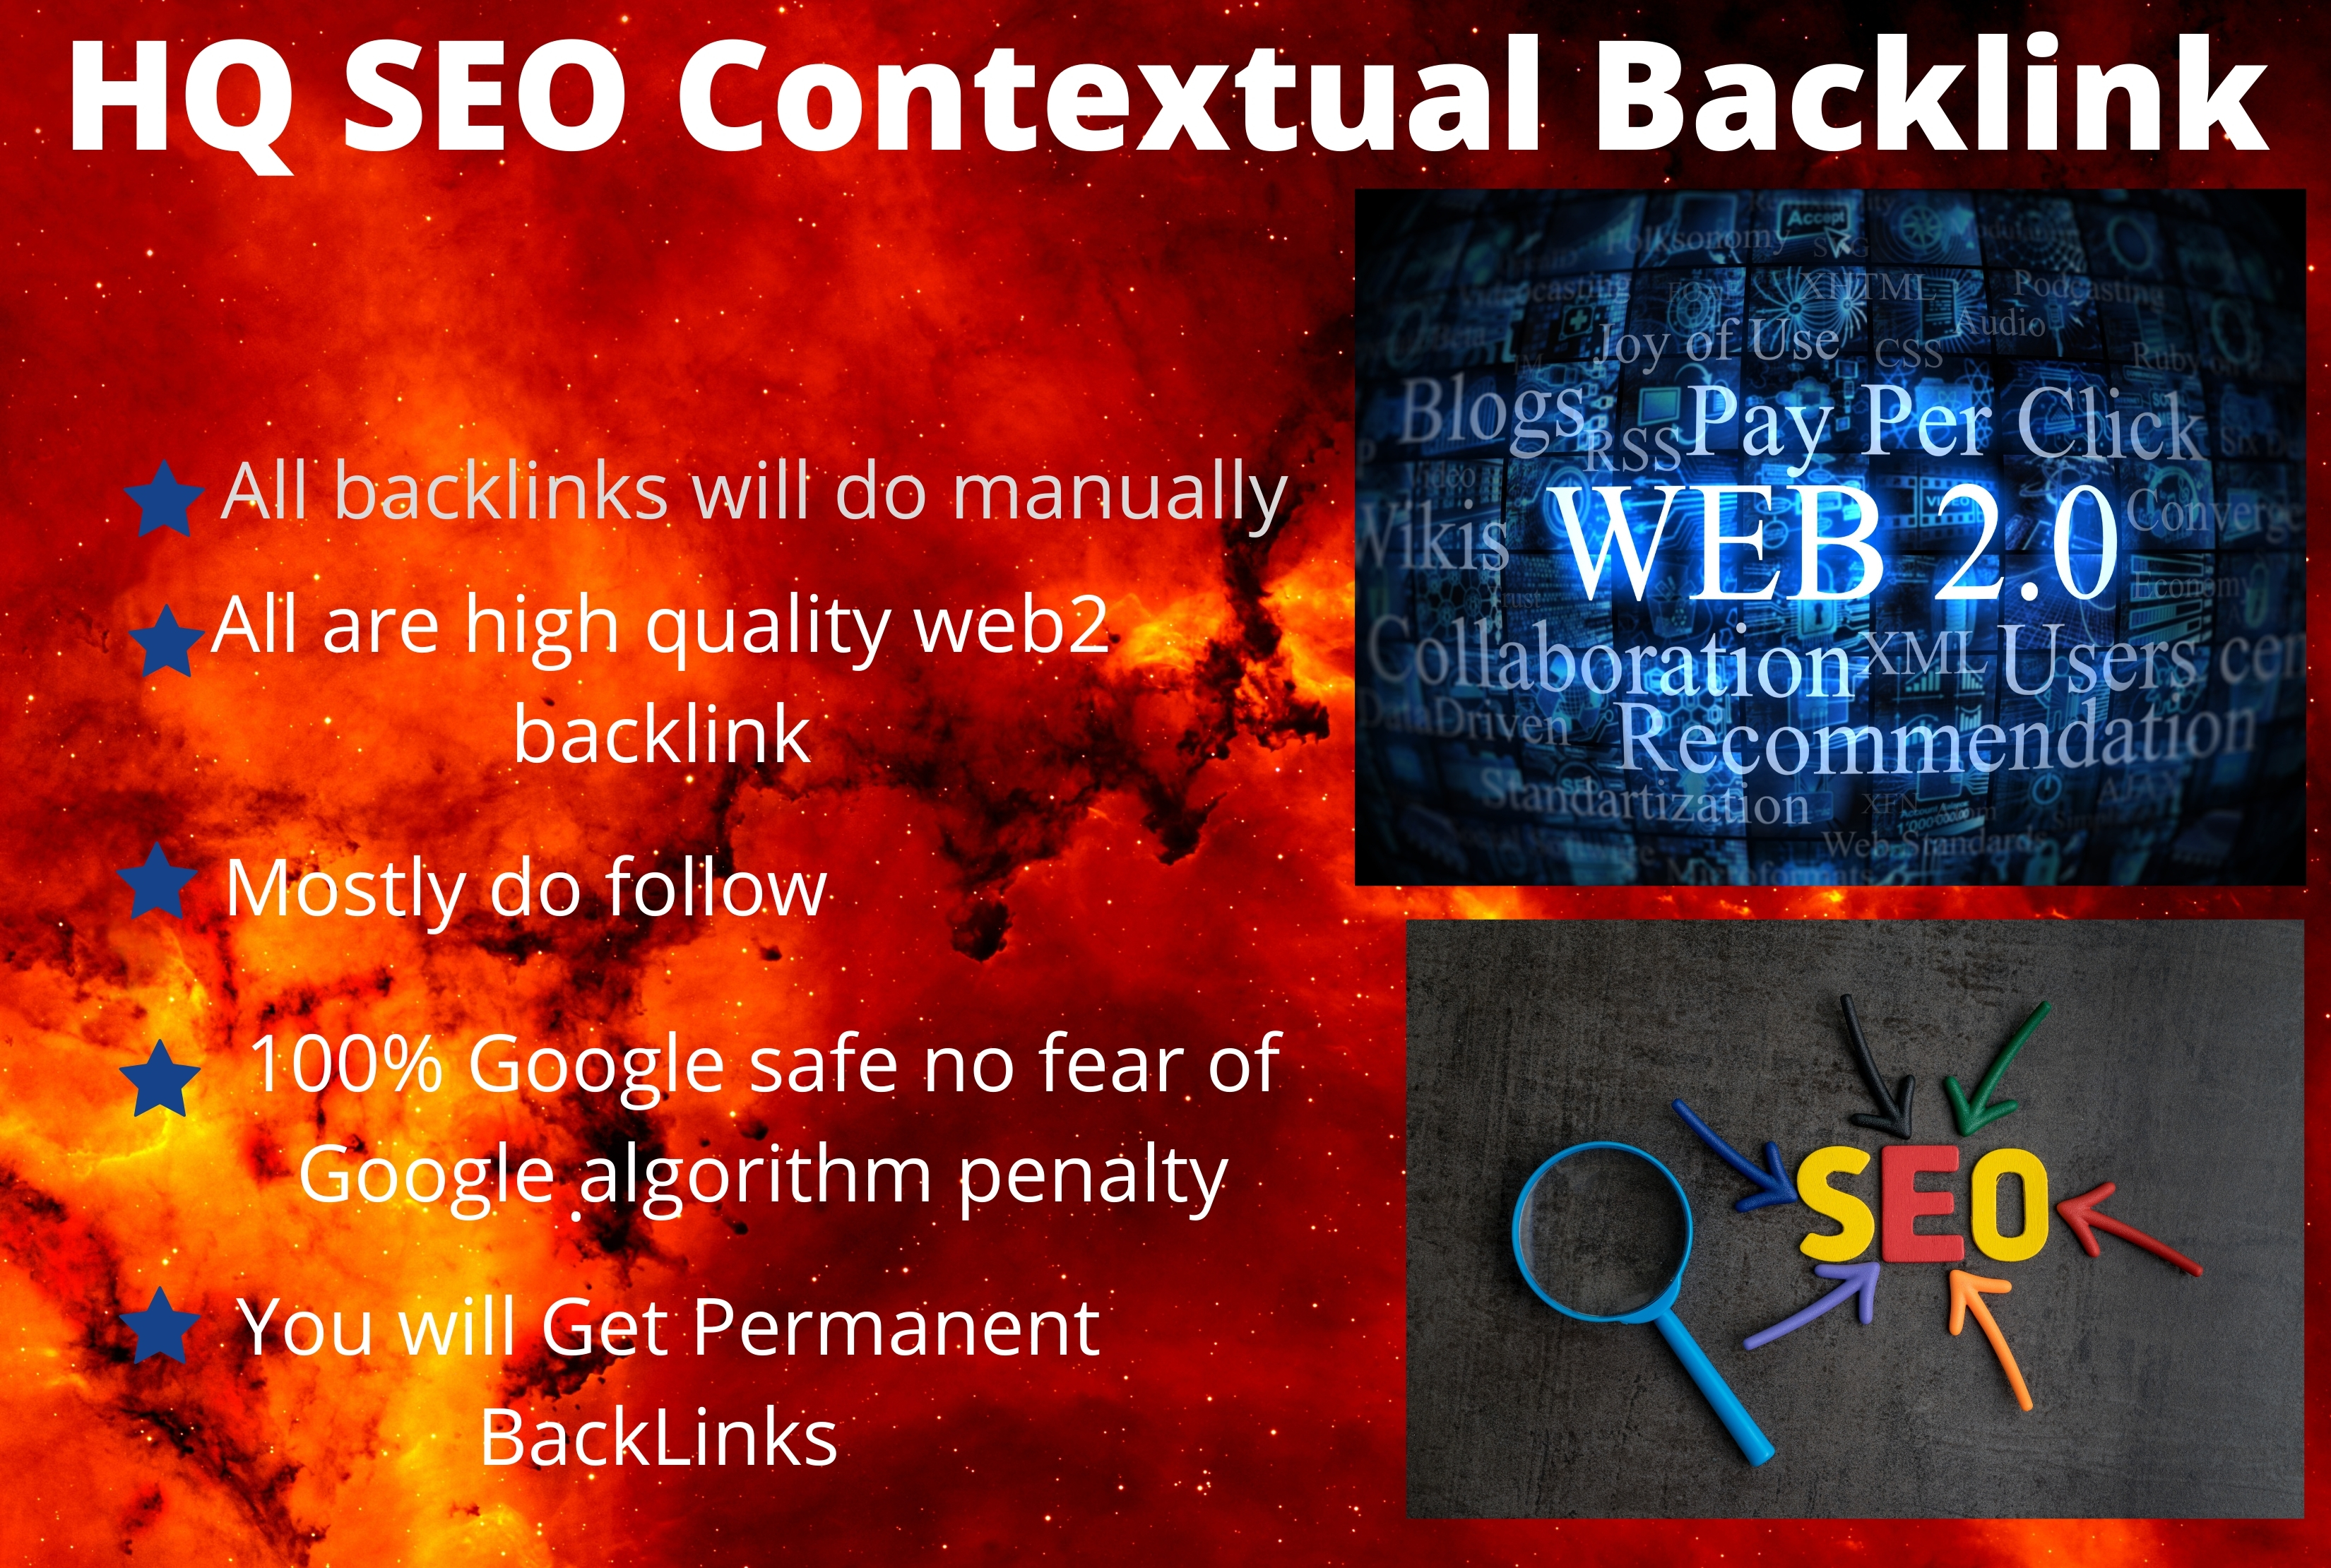 I will provide 50 HQ SEO Contextual Backlink